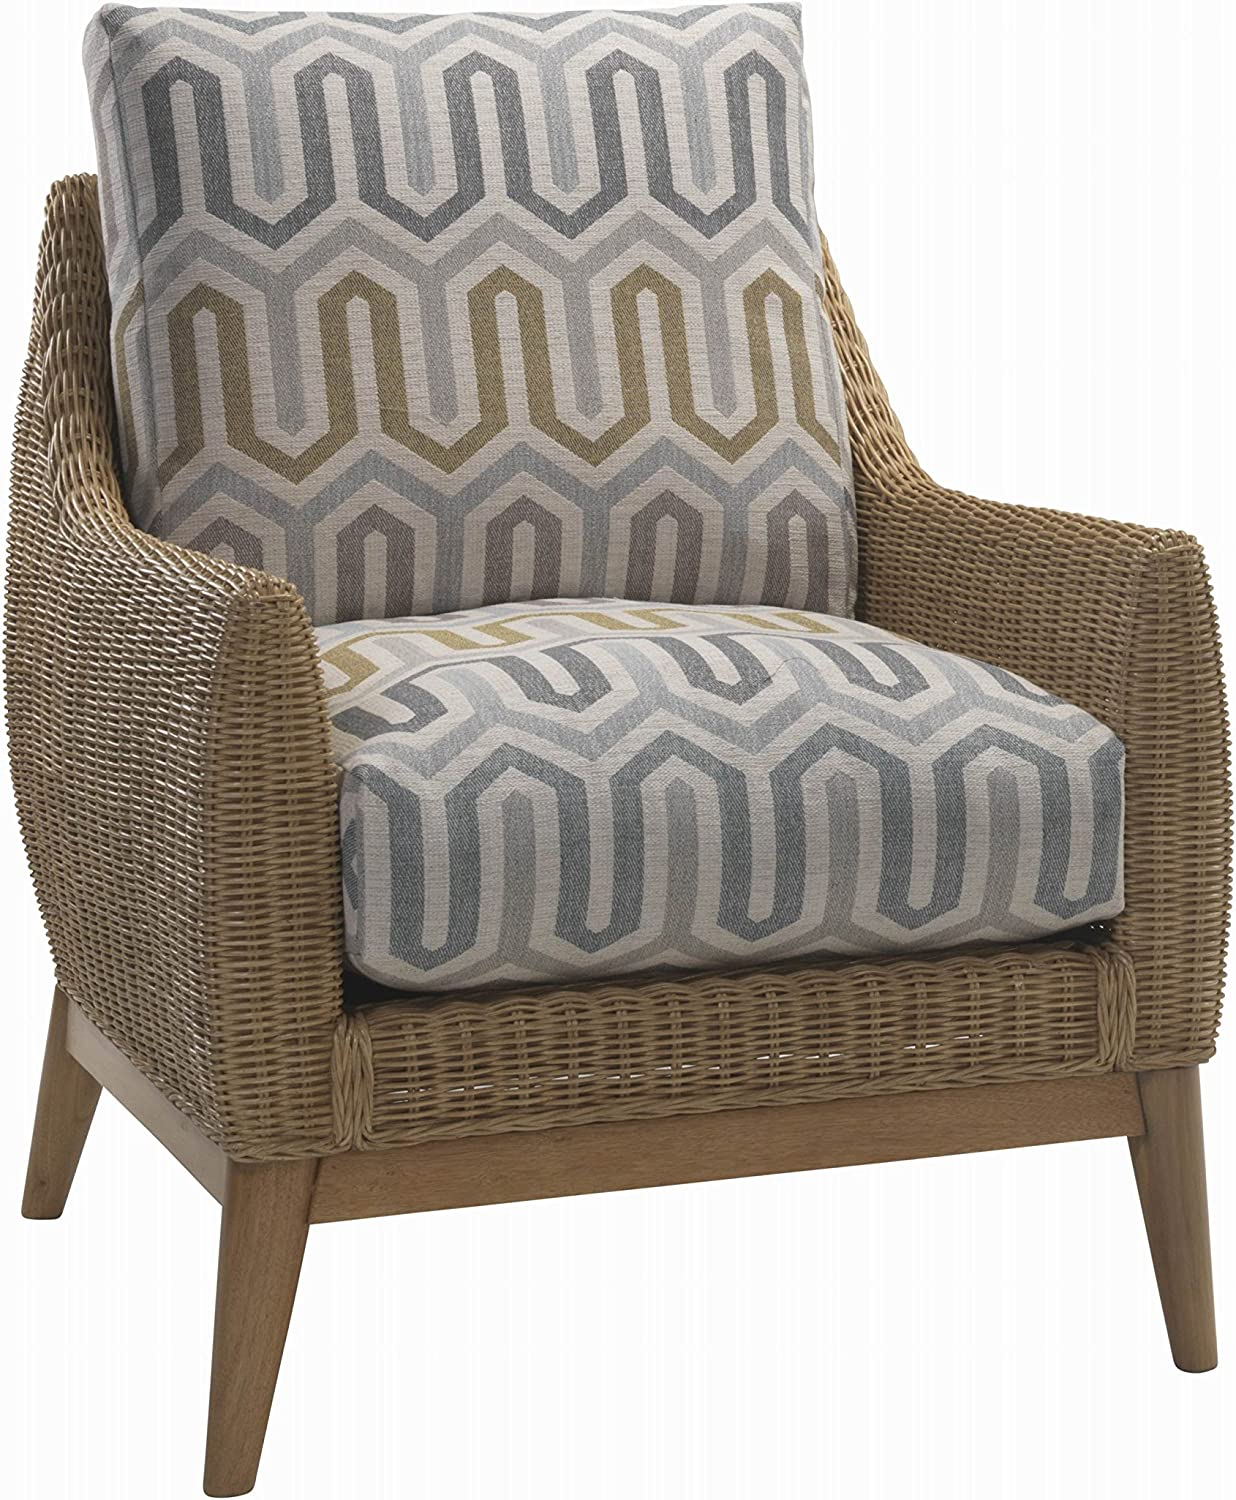 Desser Camden Armchair in Pimlico Fabric Real Cane Rattan Indoor Conservatory Furniture with UK Manufactured Cushions – Quallofil Technology - Chair: H92cm x W75cm x D89cm